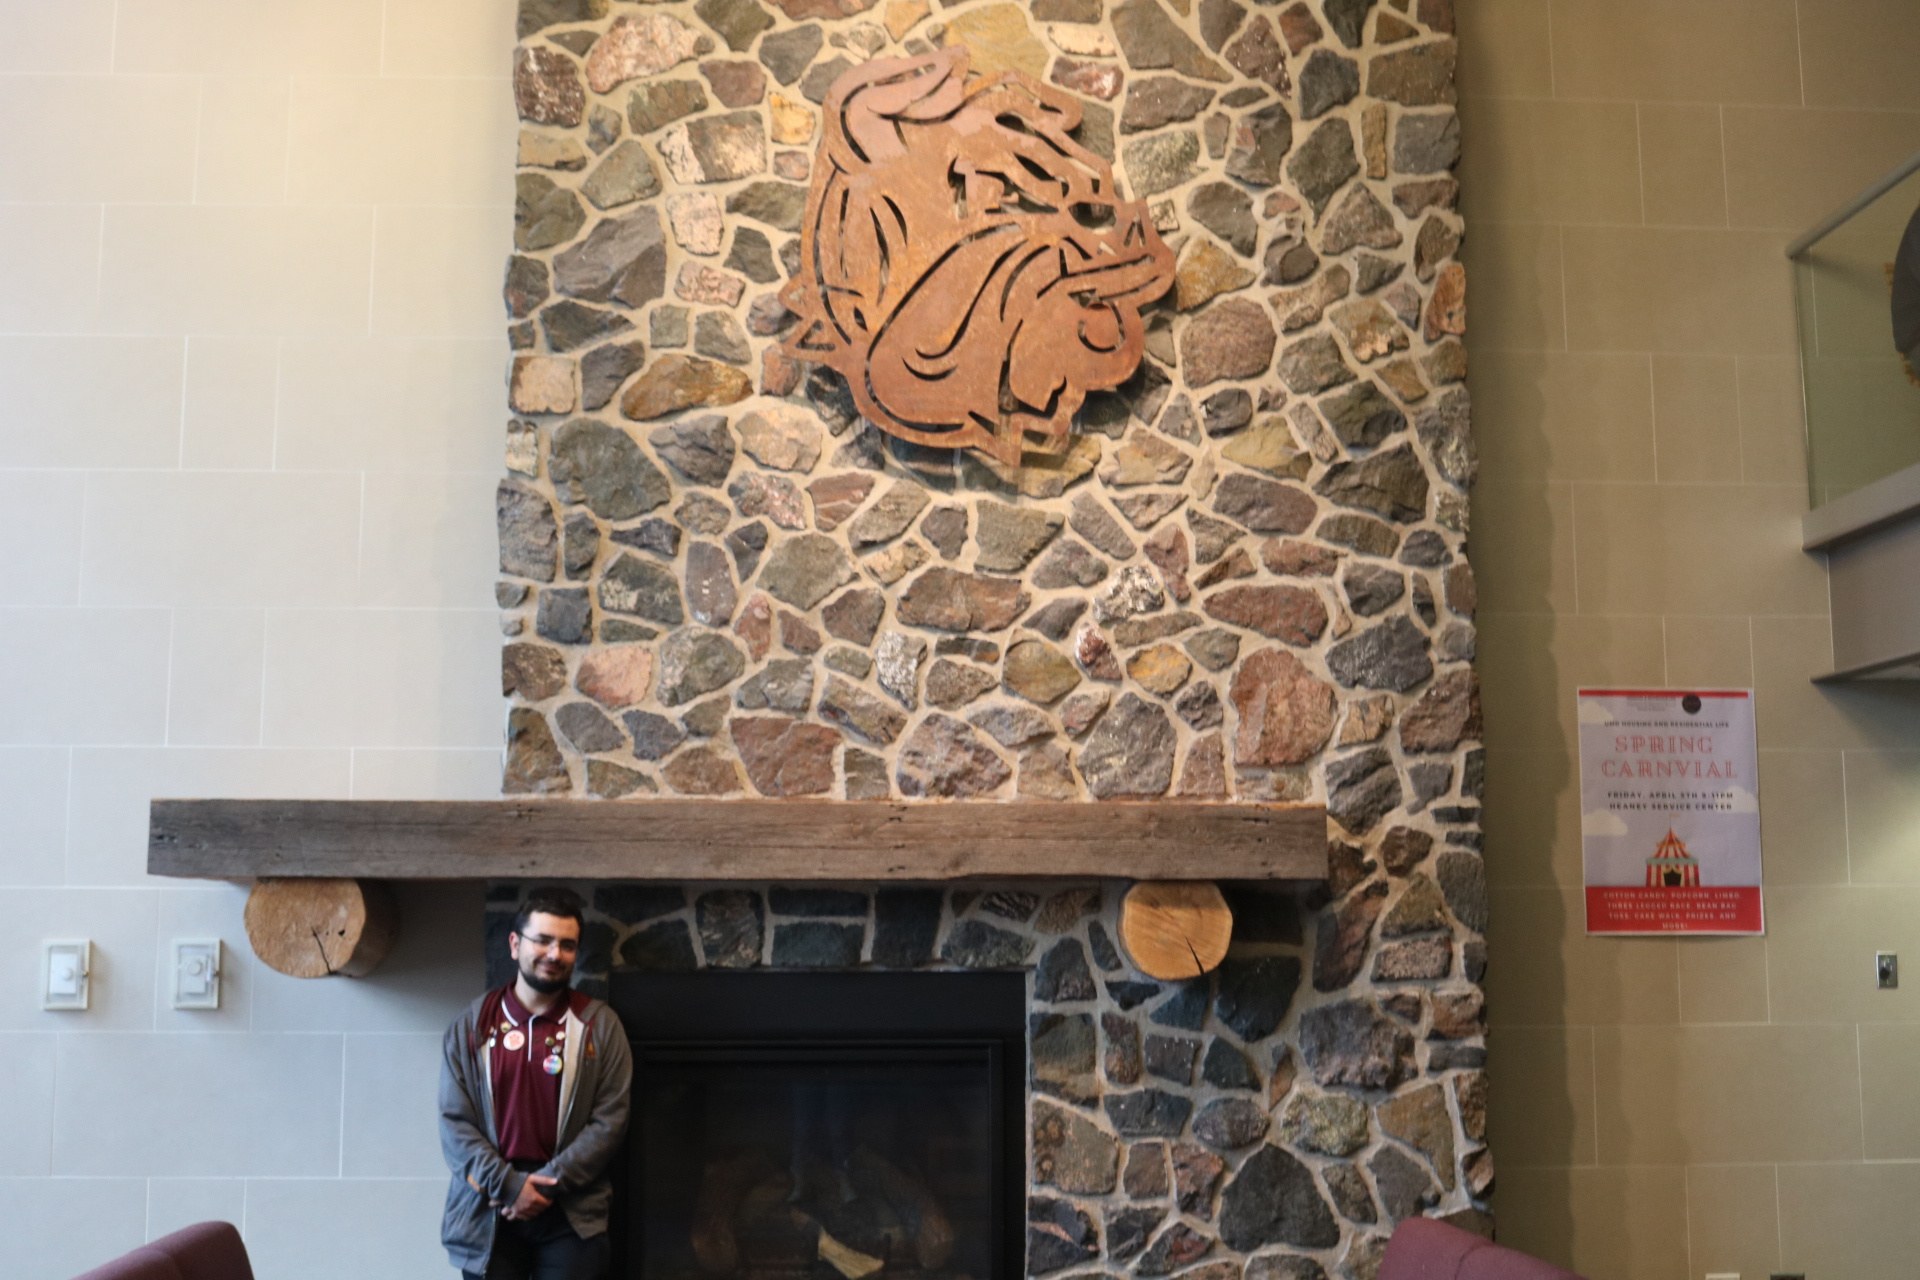 Farahid poses next to the fireplace in Ianni, an homage to Accepting You - The Hearth Guild's name. Photo by Madison Hunter